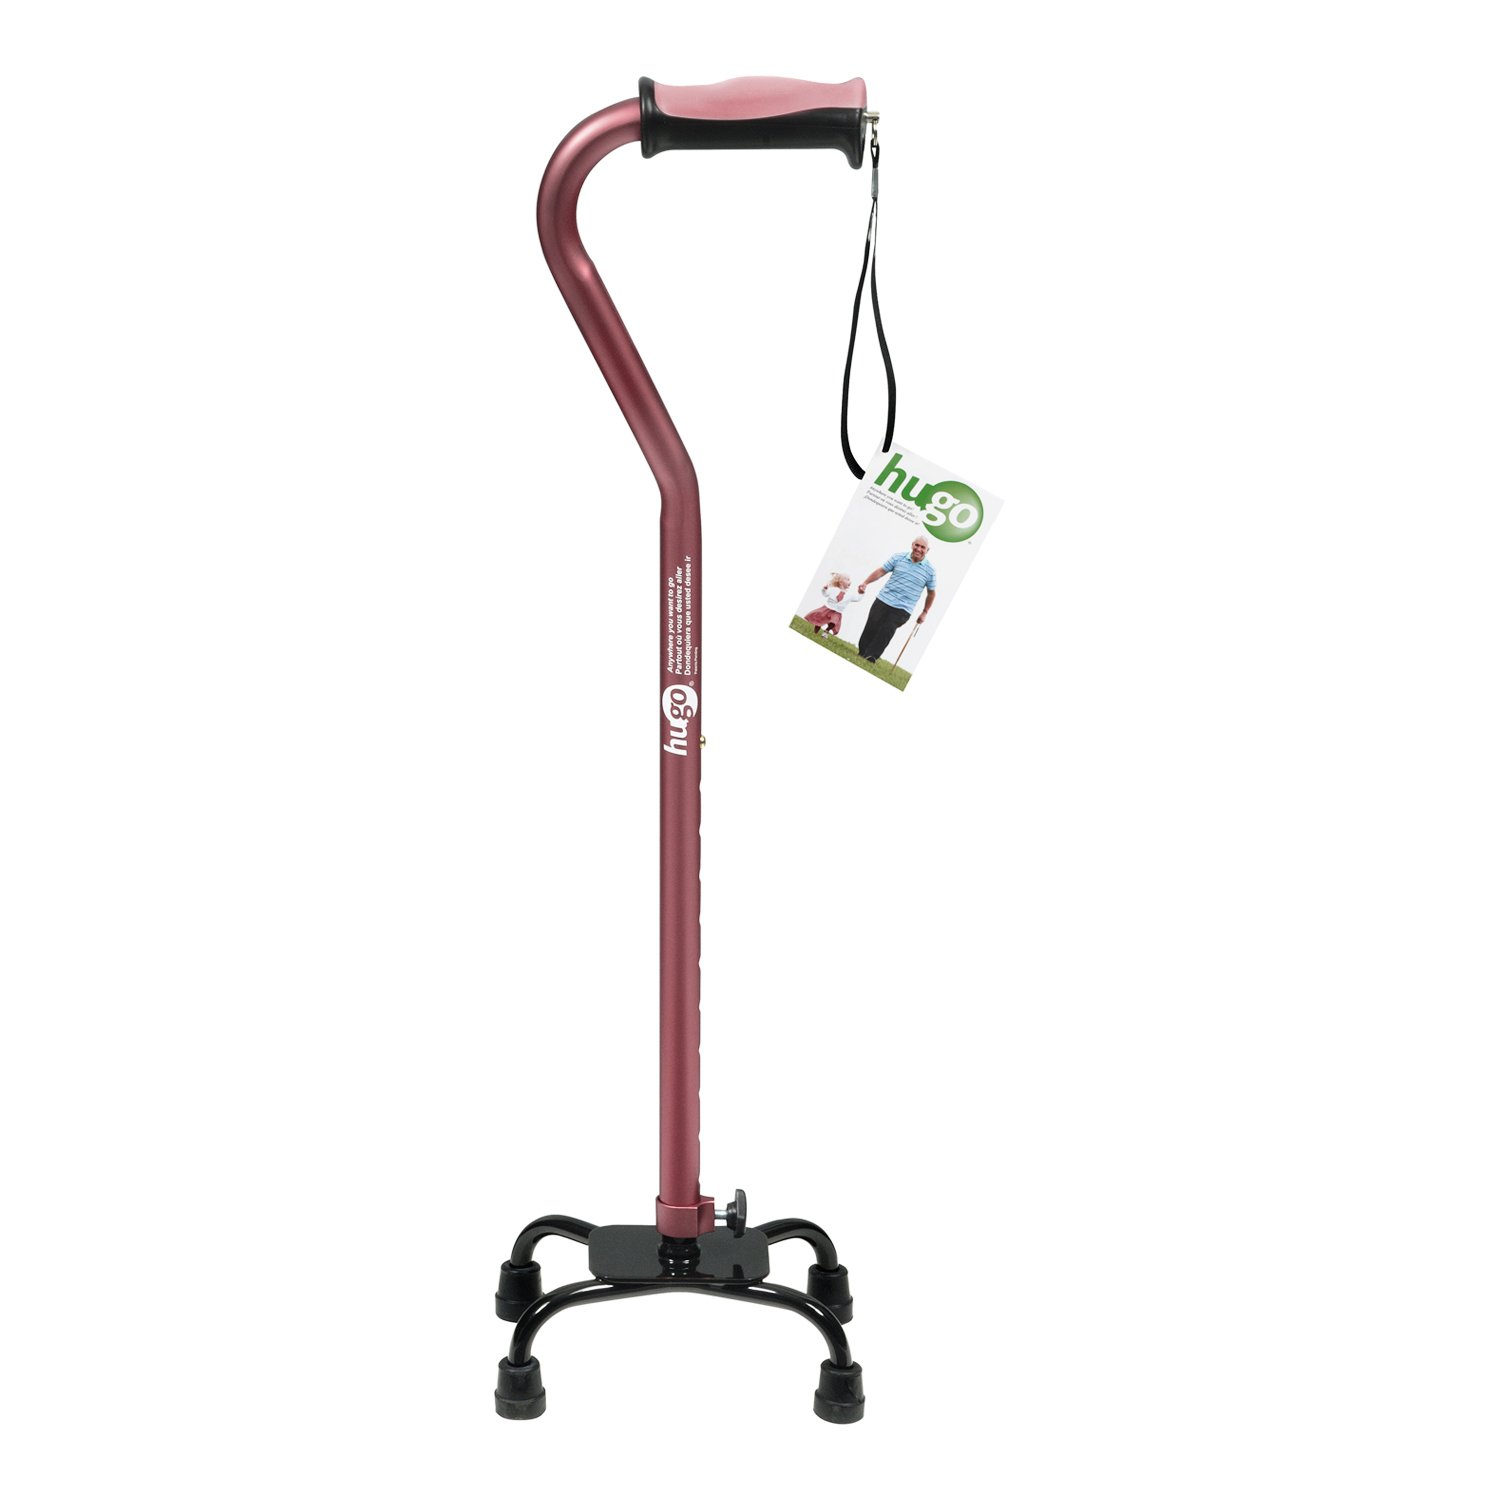 Hugo Adjustable Quad Cane for Right - 73.3KB